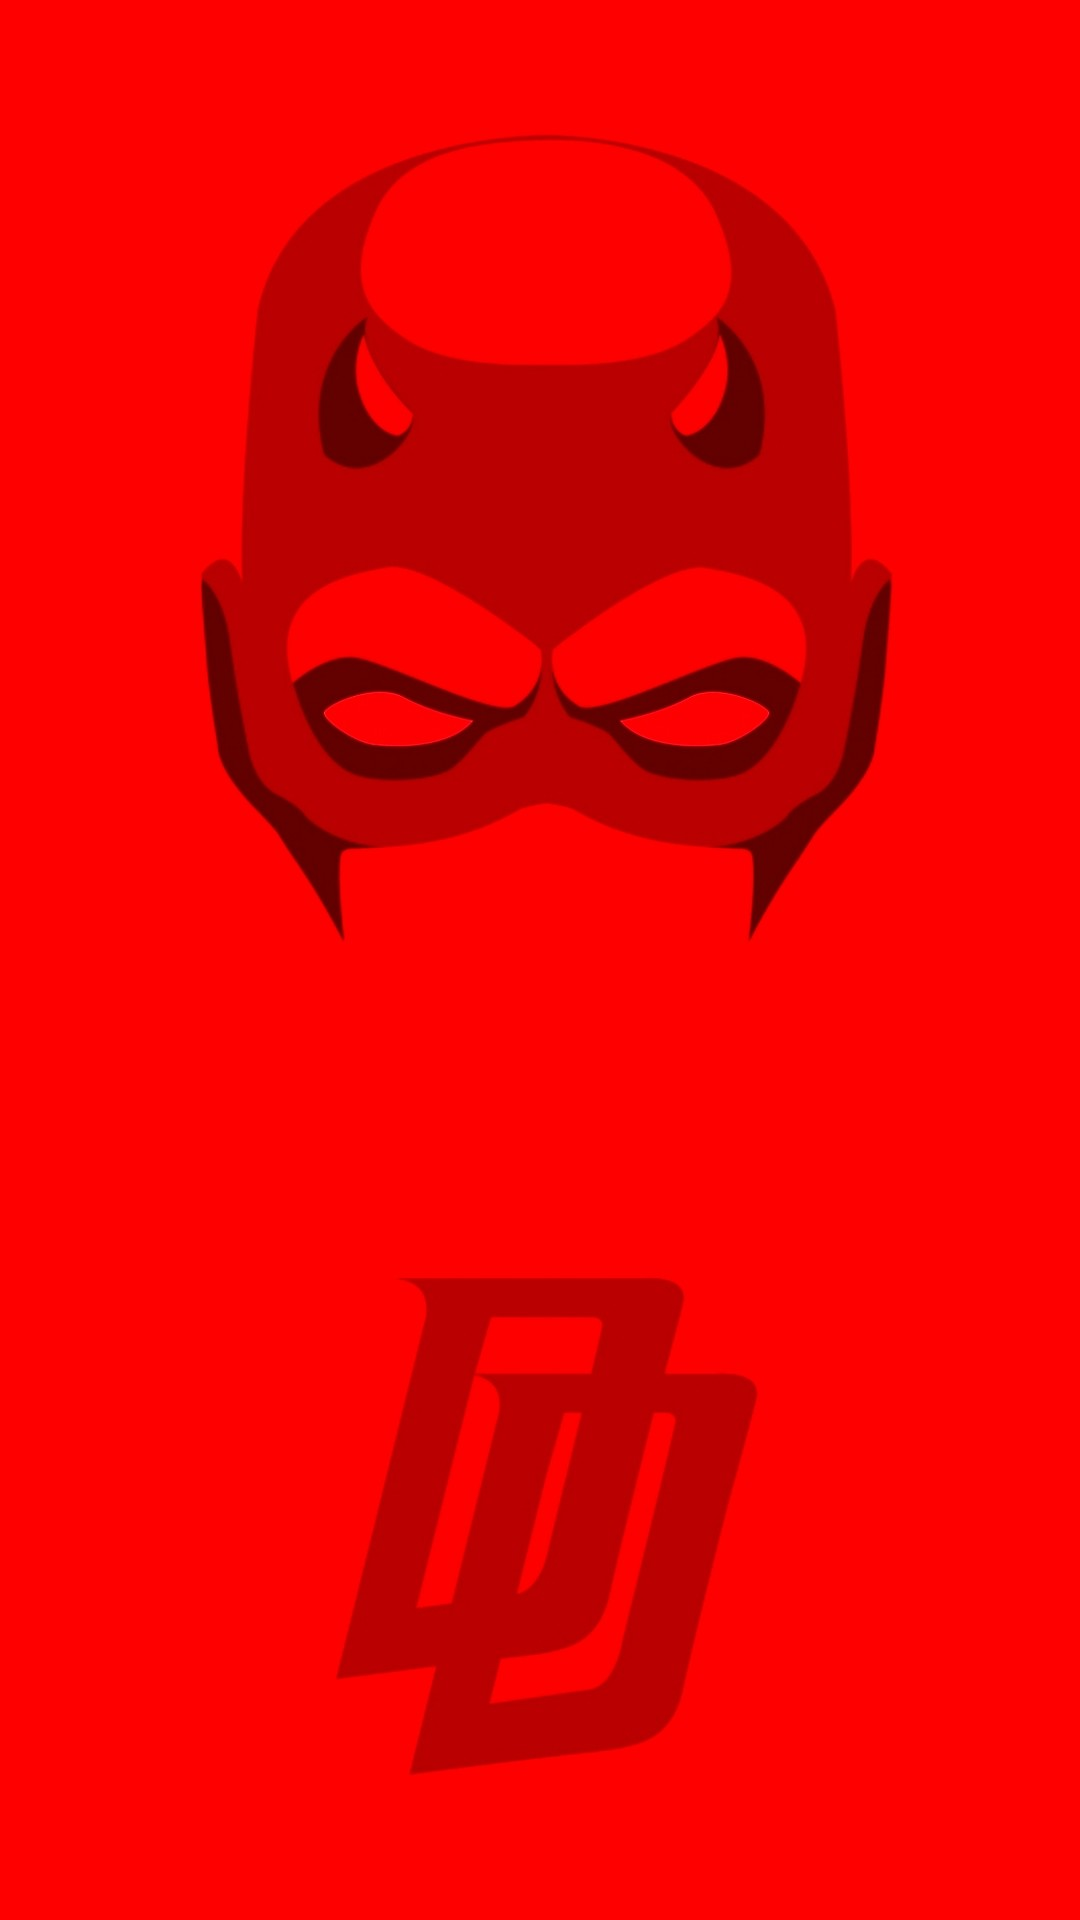 Daredevil Wallpaper Phone 76 images